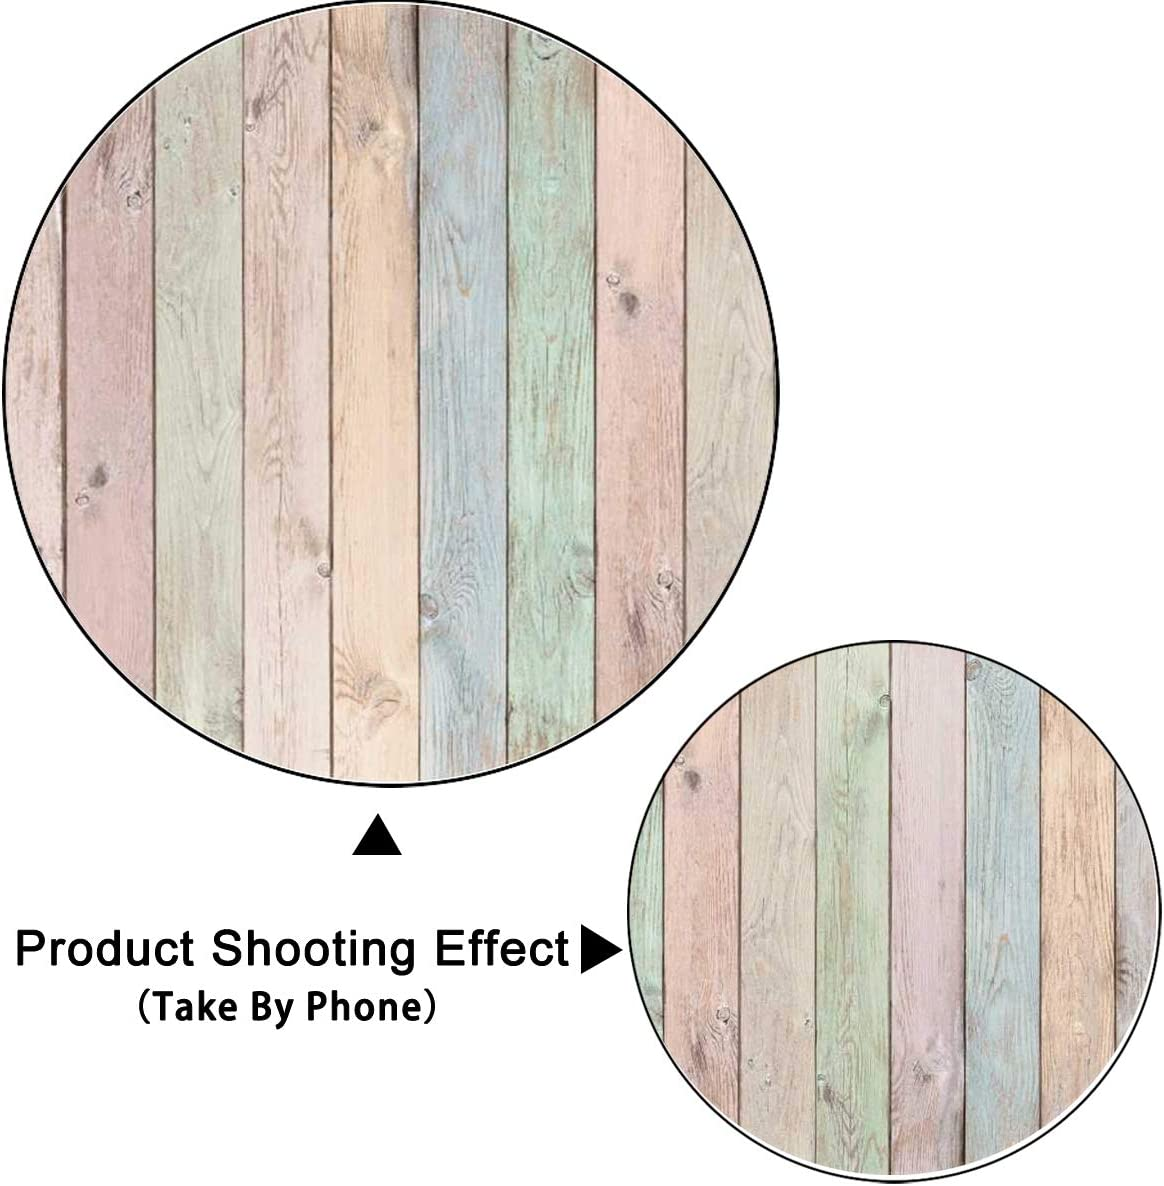 10x8ft,chy454 Levoo Flannel Wood Background Photography Studio Vintage Worn Wooden Boards Backdrop Birthday Family Party Holiday Celebration Romantic Wedding Photography Home Decoration